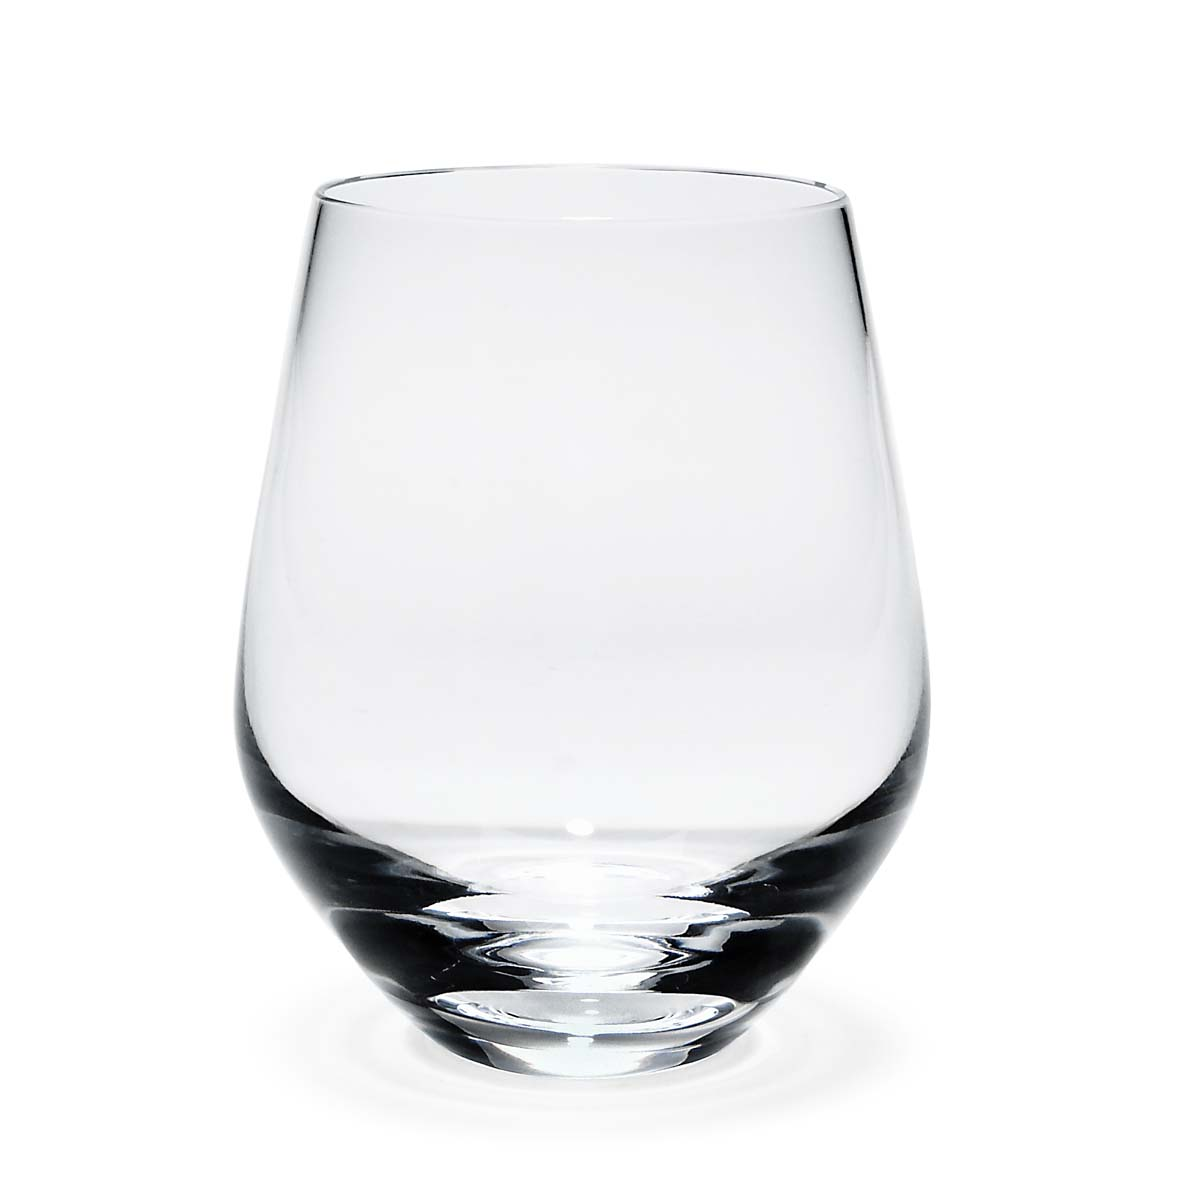 Lenox Tuscany Classics Simply White Stemless Tumbler Set 4 Piece